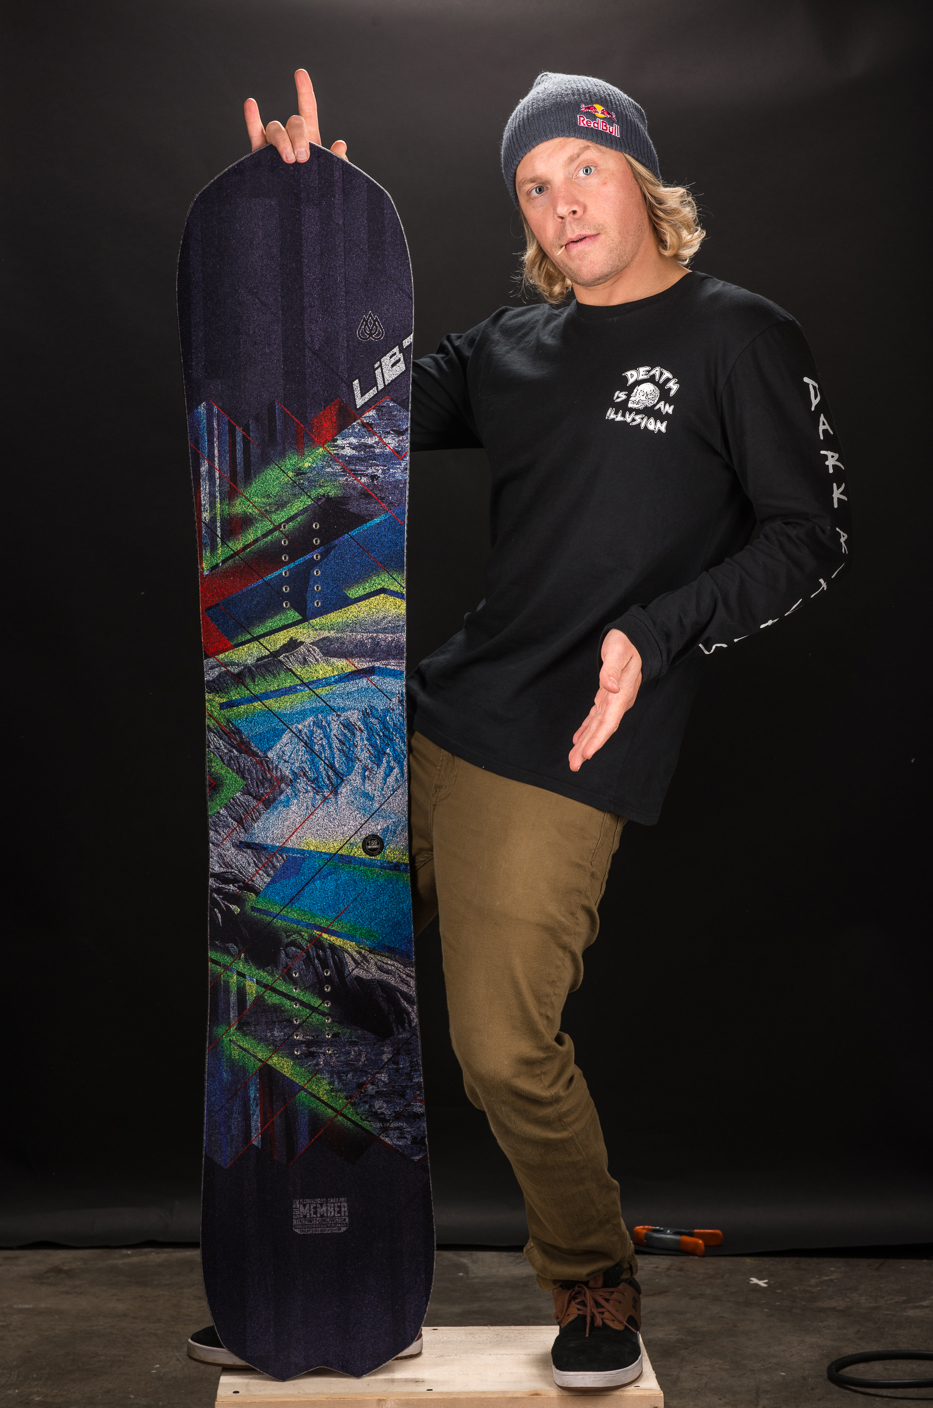 Prime-Snowboarding-Travis-Rice-Lib-Tech-Pro-Model